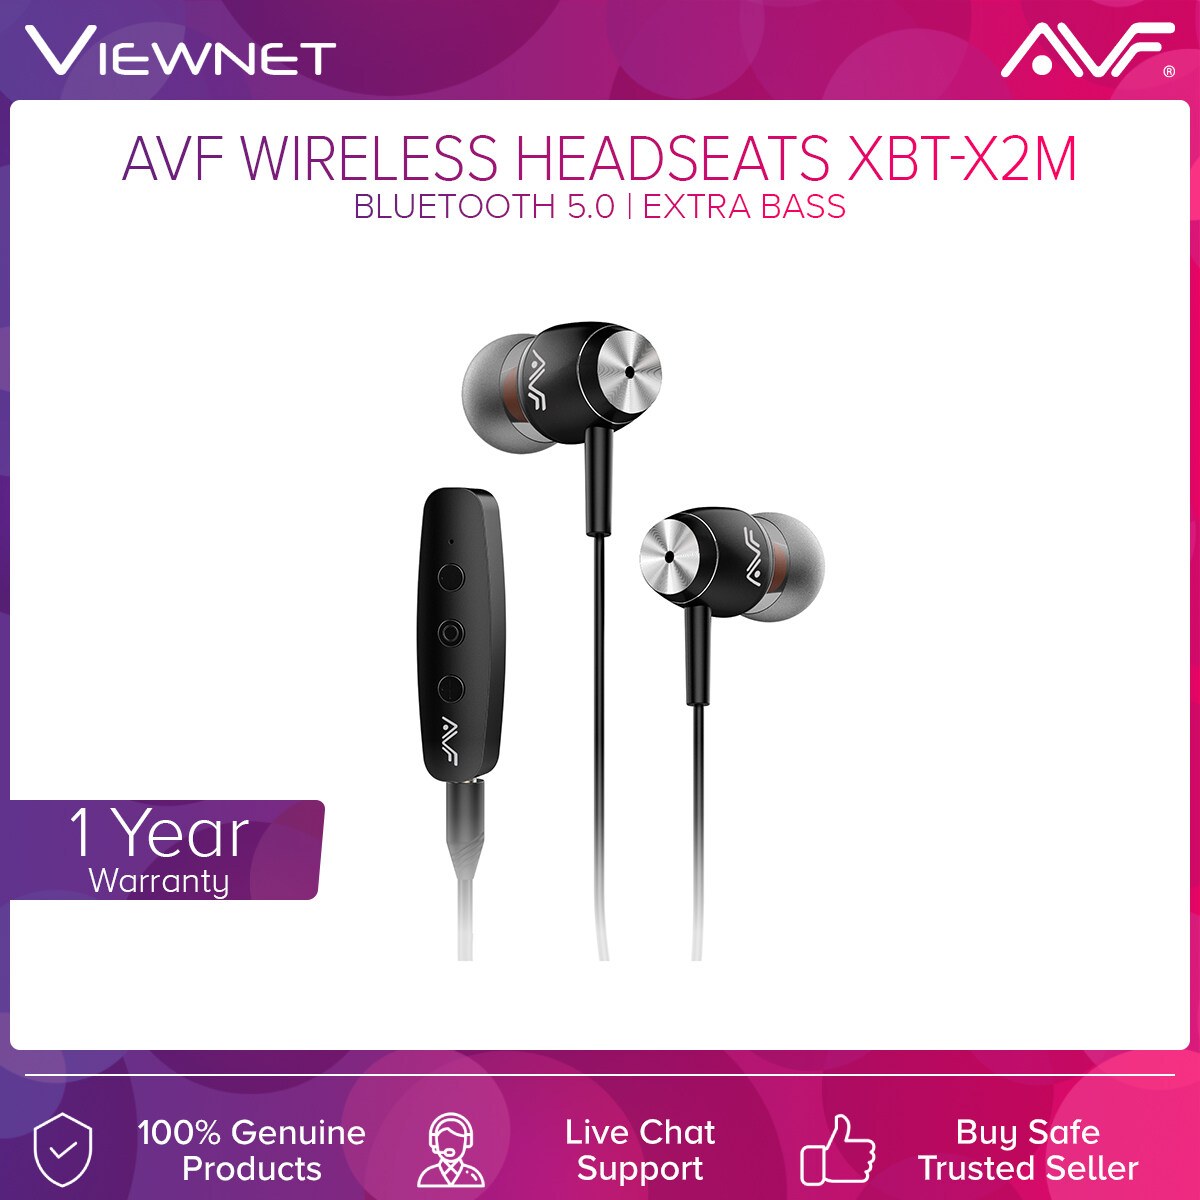 AVF Wireless Earphone HBT-X2M  with Bluetooth 5.0, Extra Bass,  Magnetic Suction for Easy Carrying, HD Transmission